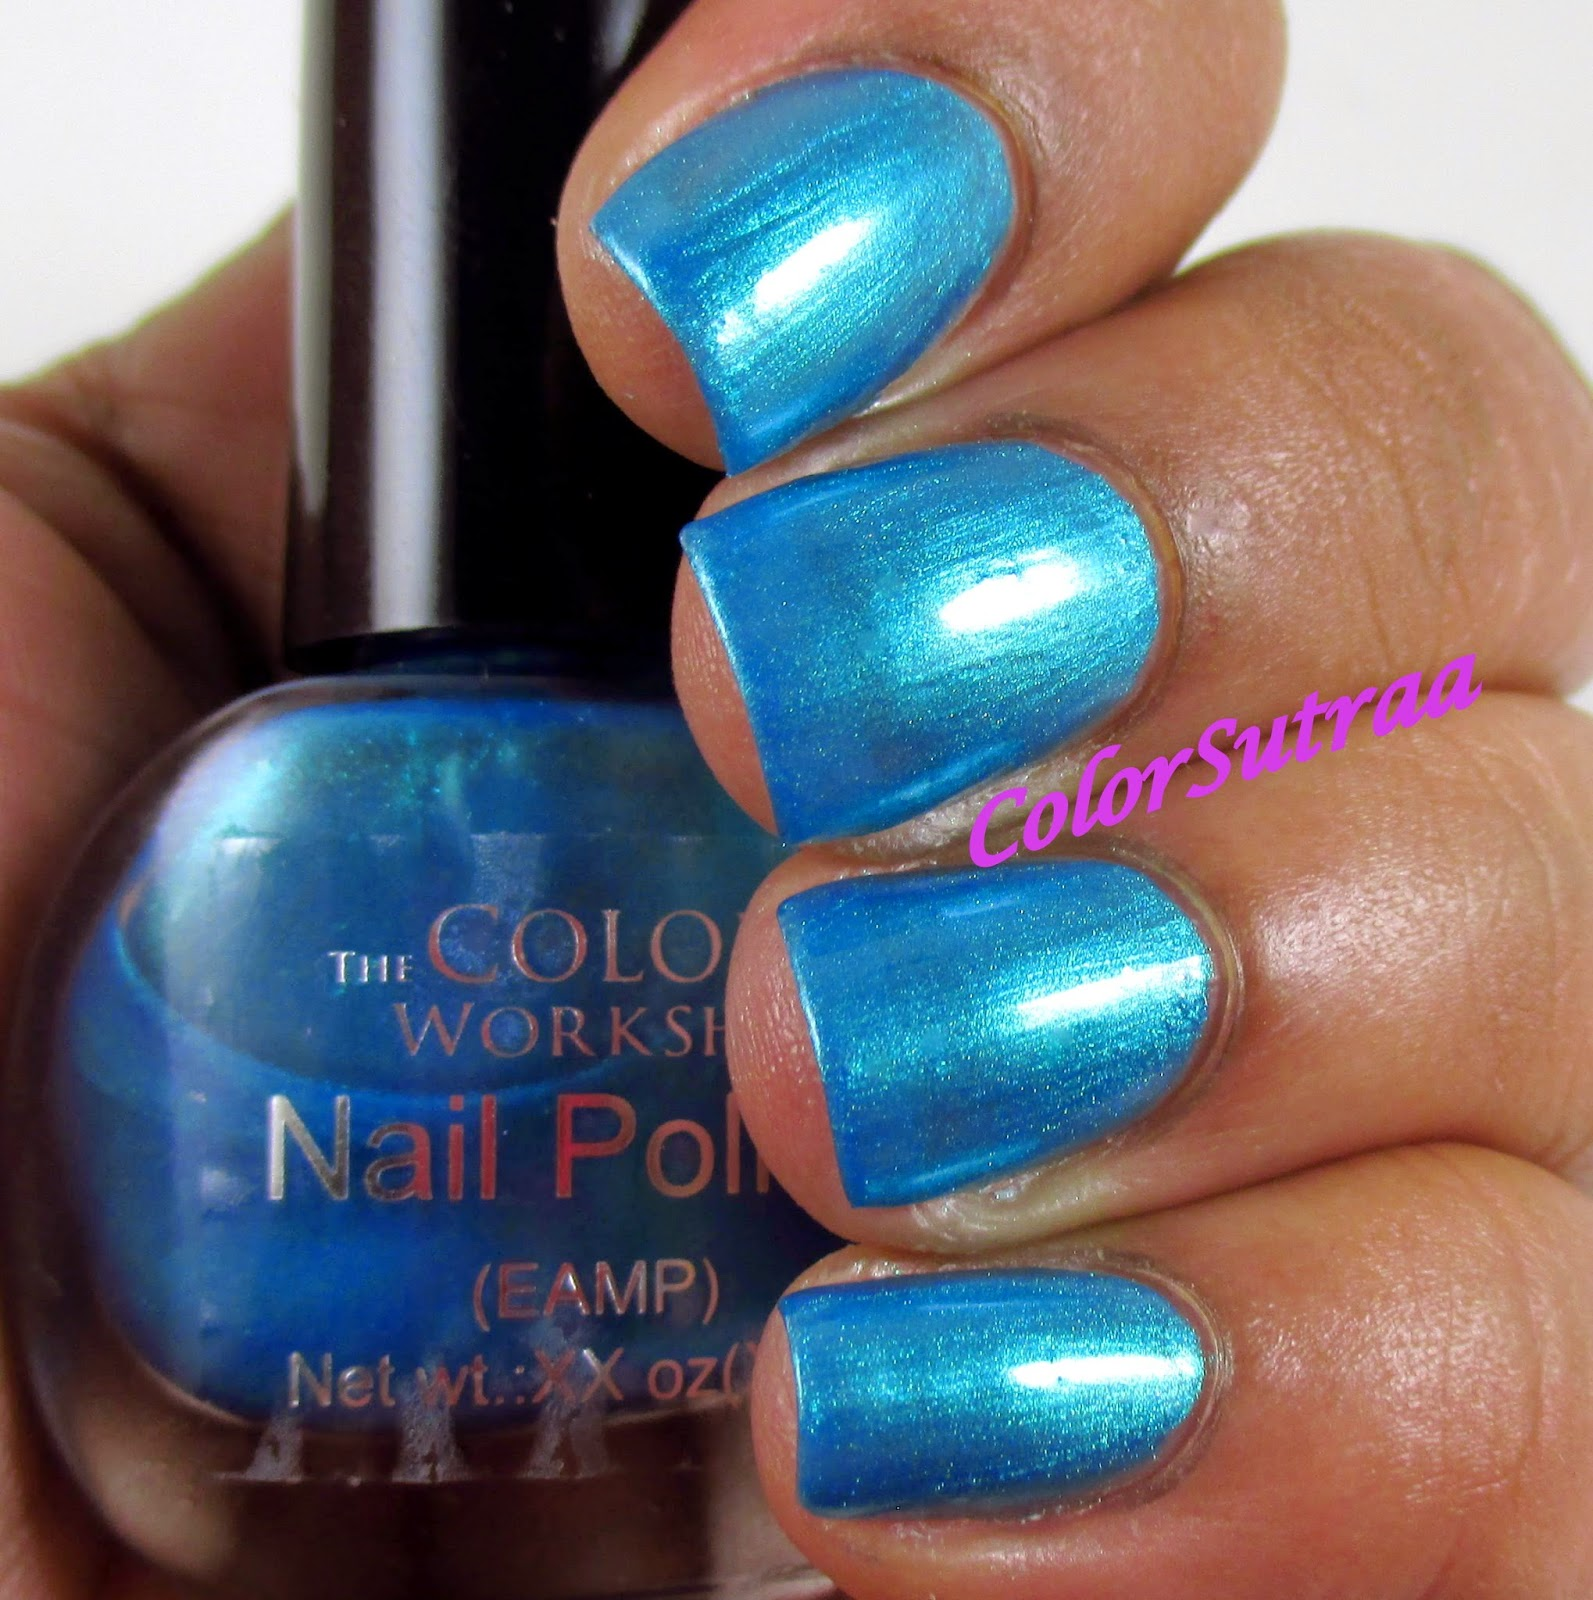 MARKWINS Mini Nail Salon : Swatches and Review - ColorSutraa